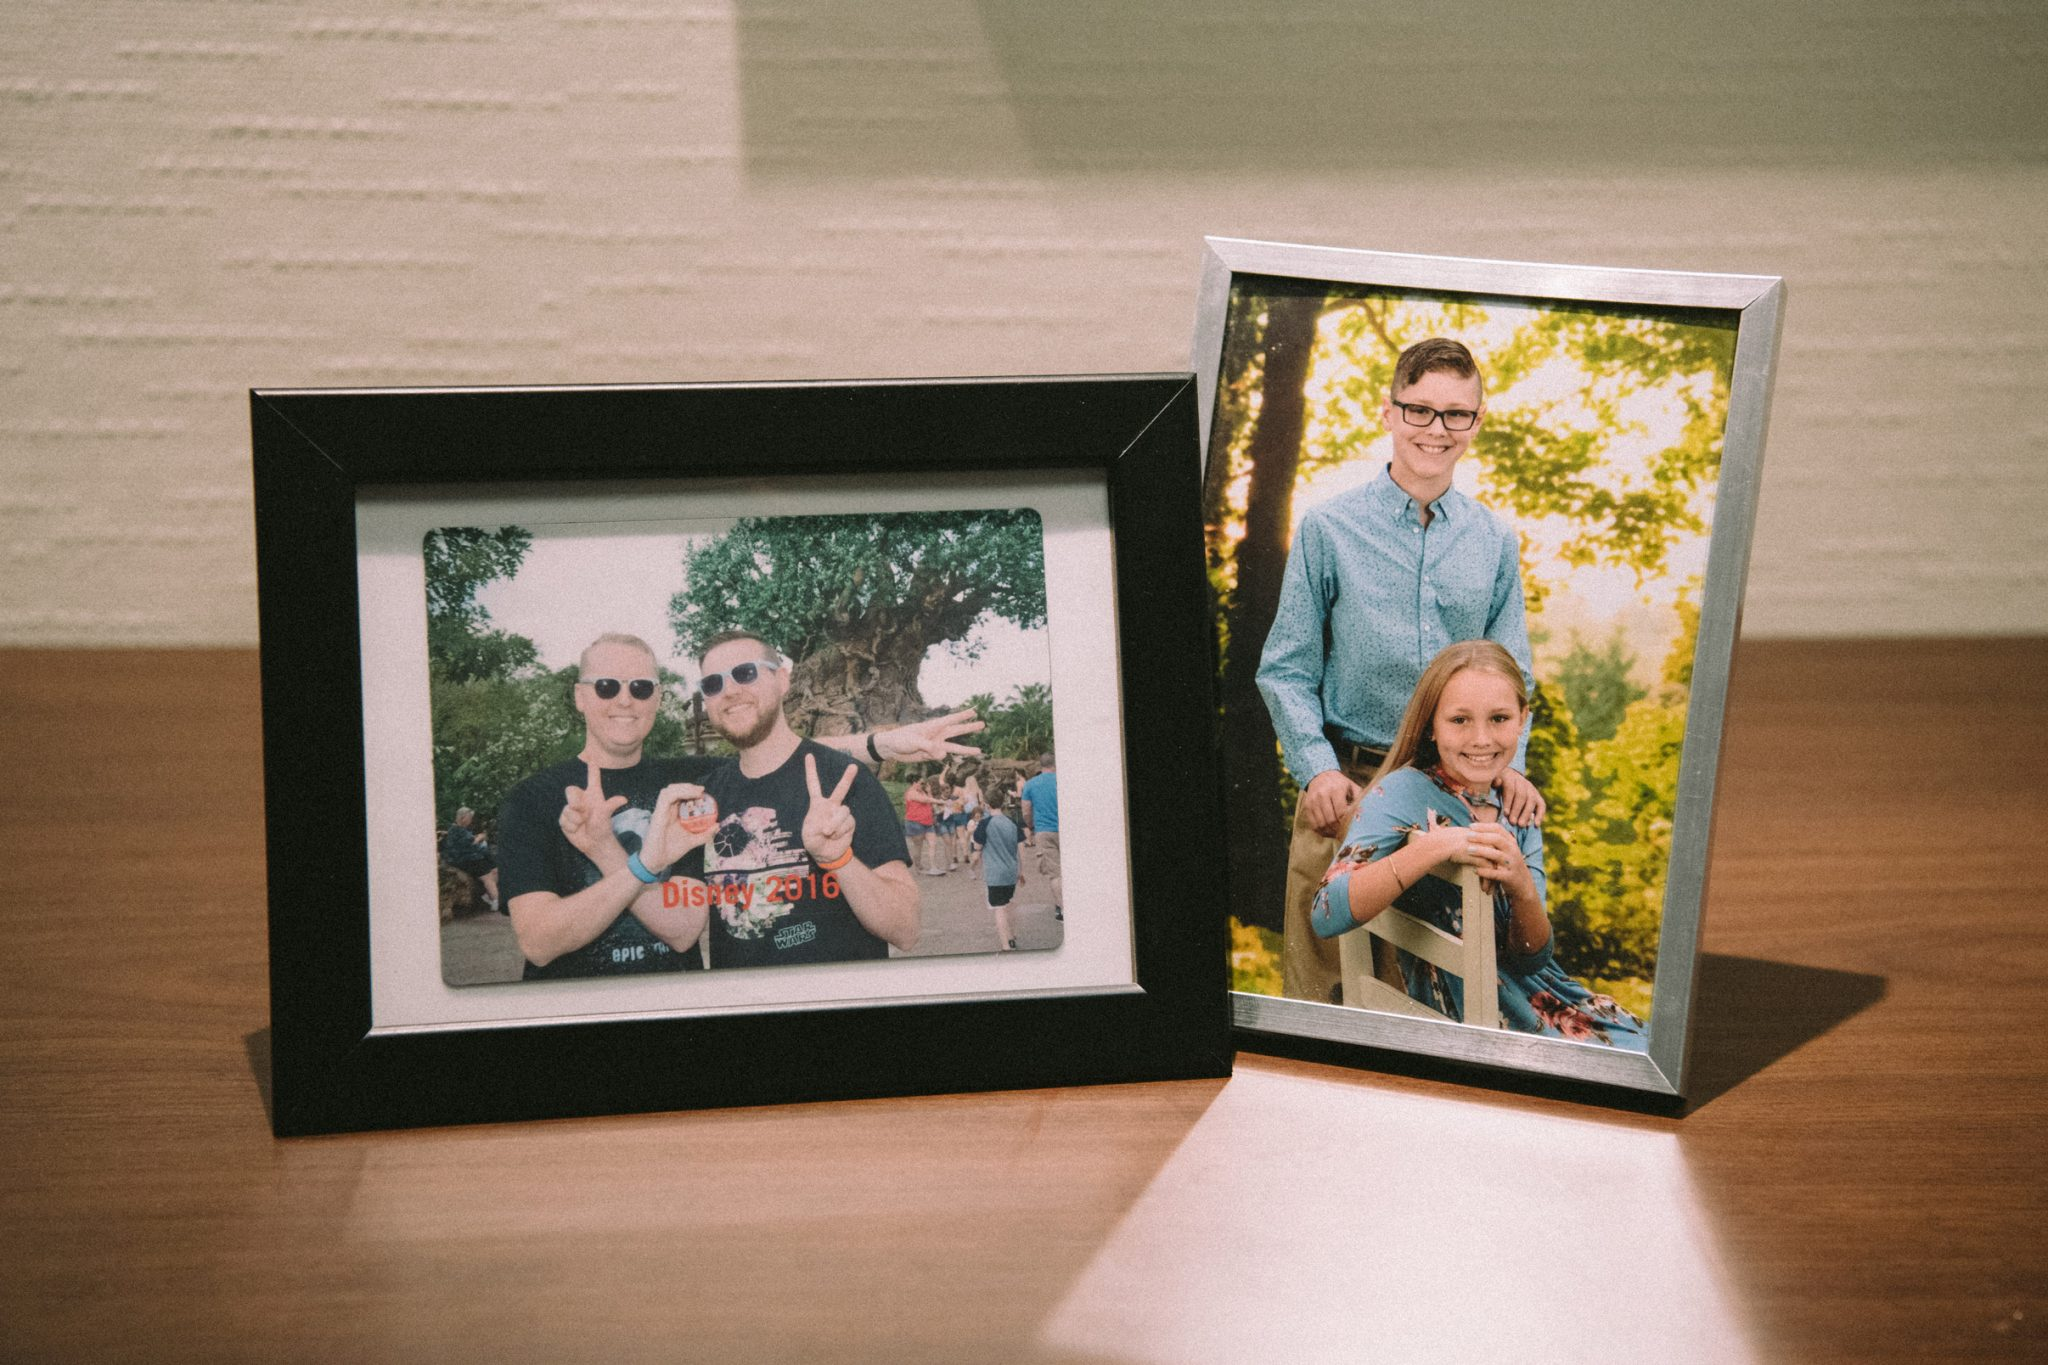 A framed photo of Chris and his husband in front of Disney's Animal Kingdom Tree of Life, and a second framed photo of his two teenaged kids.